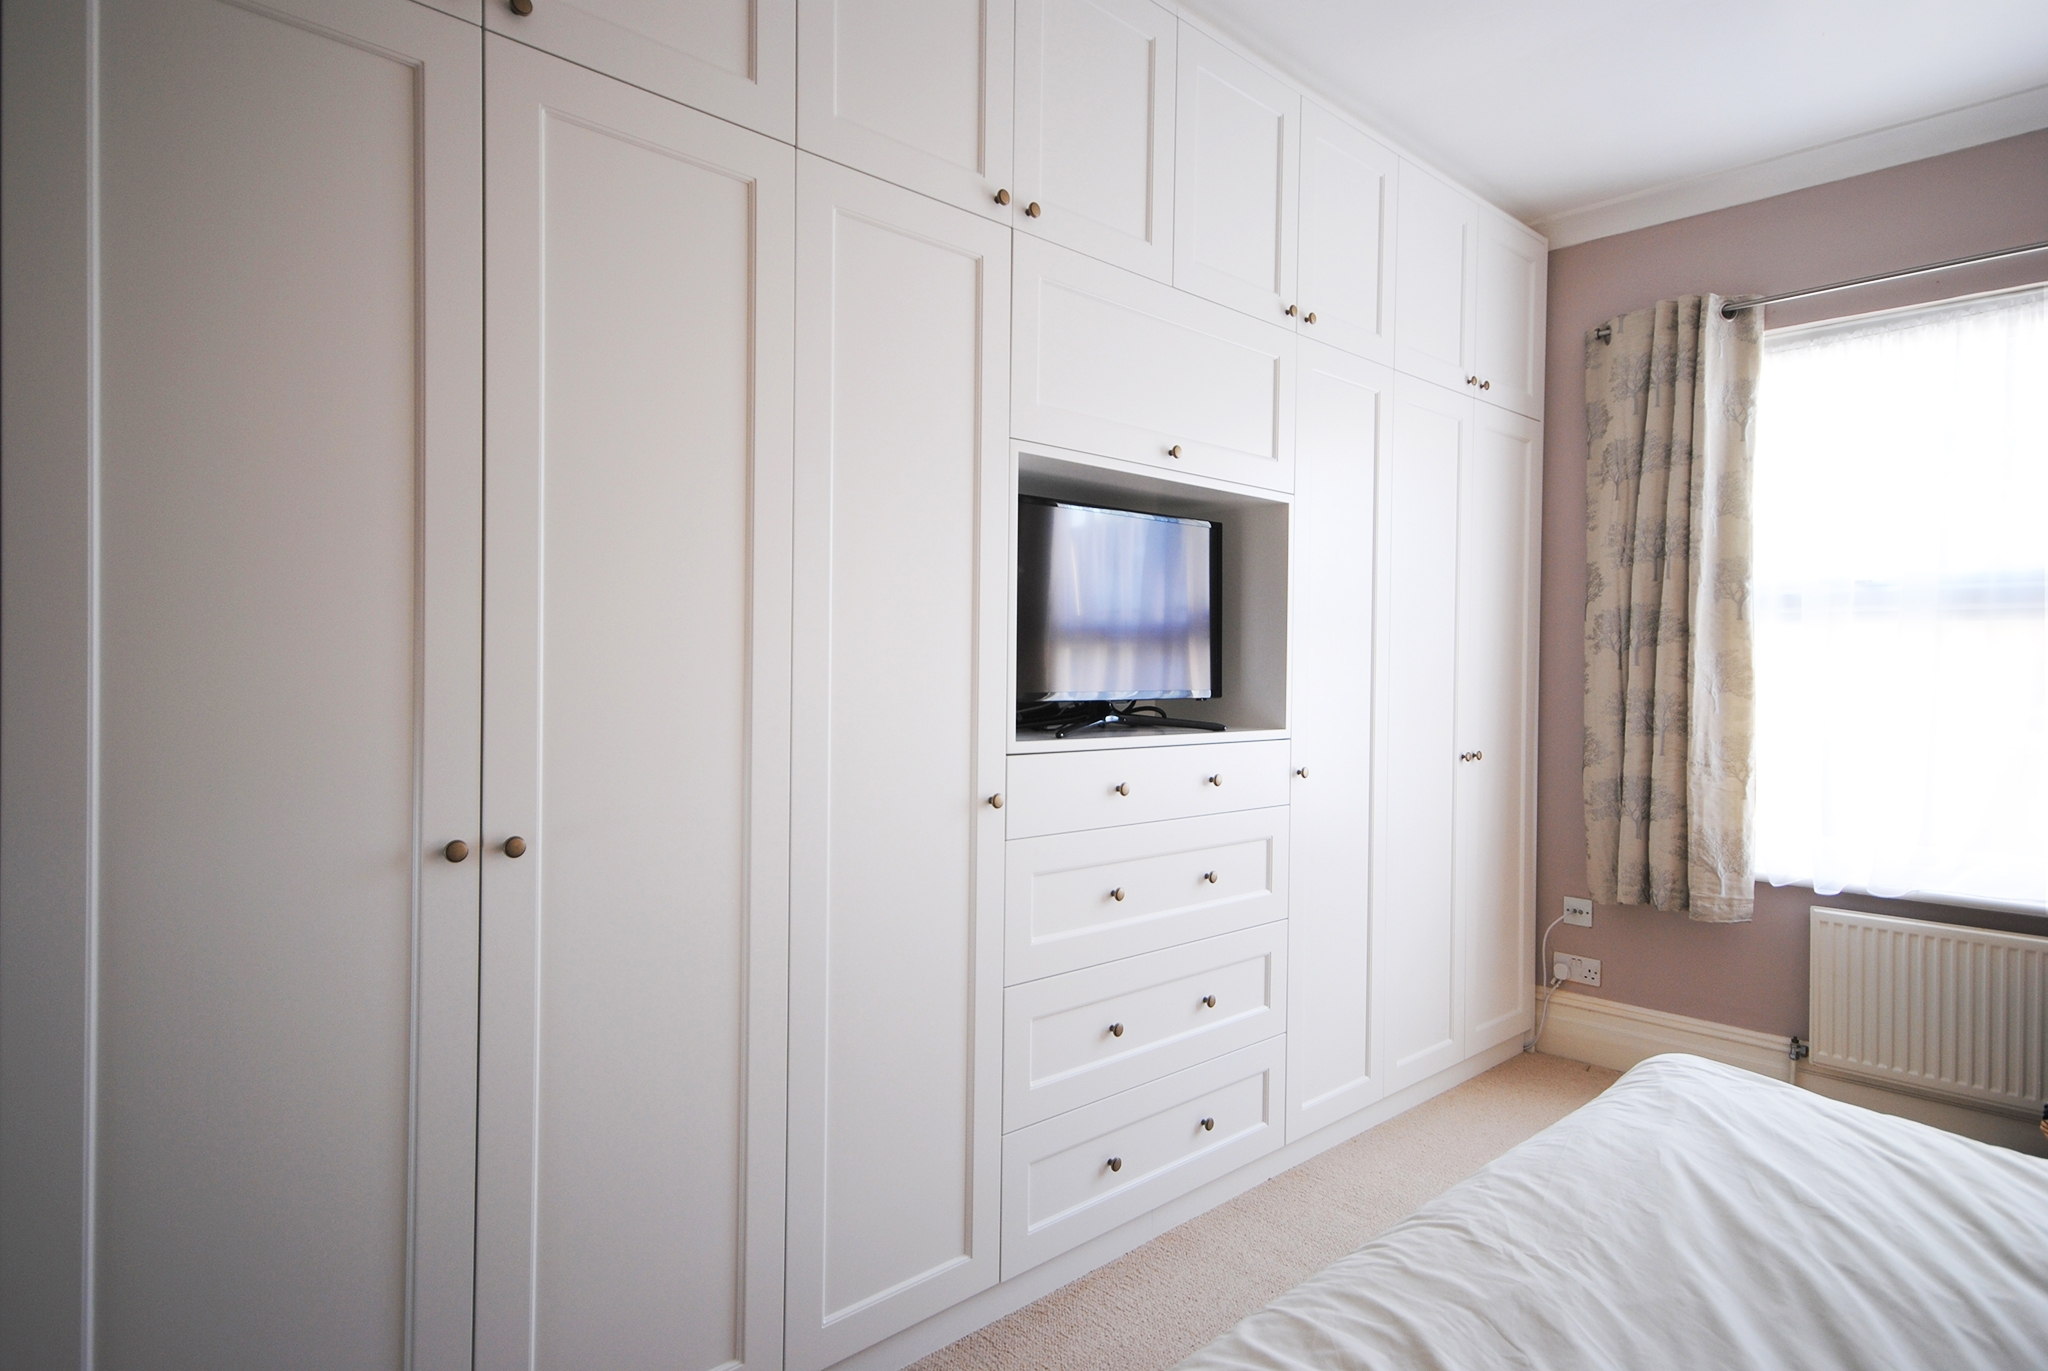 Creative Woodwork Combined A Tv Unit And Wardrobe To Make This Intended For Built In Wardrobes With Tv Space (View 14 of 15)